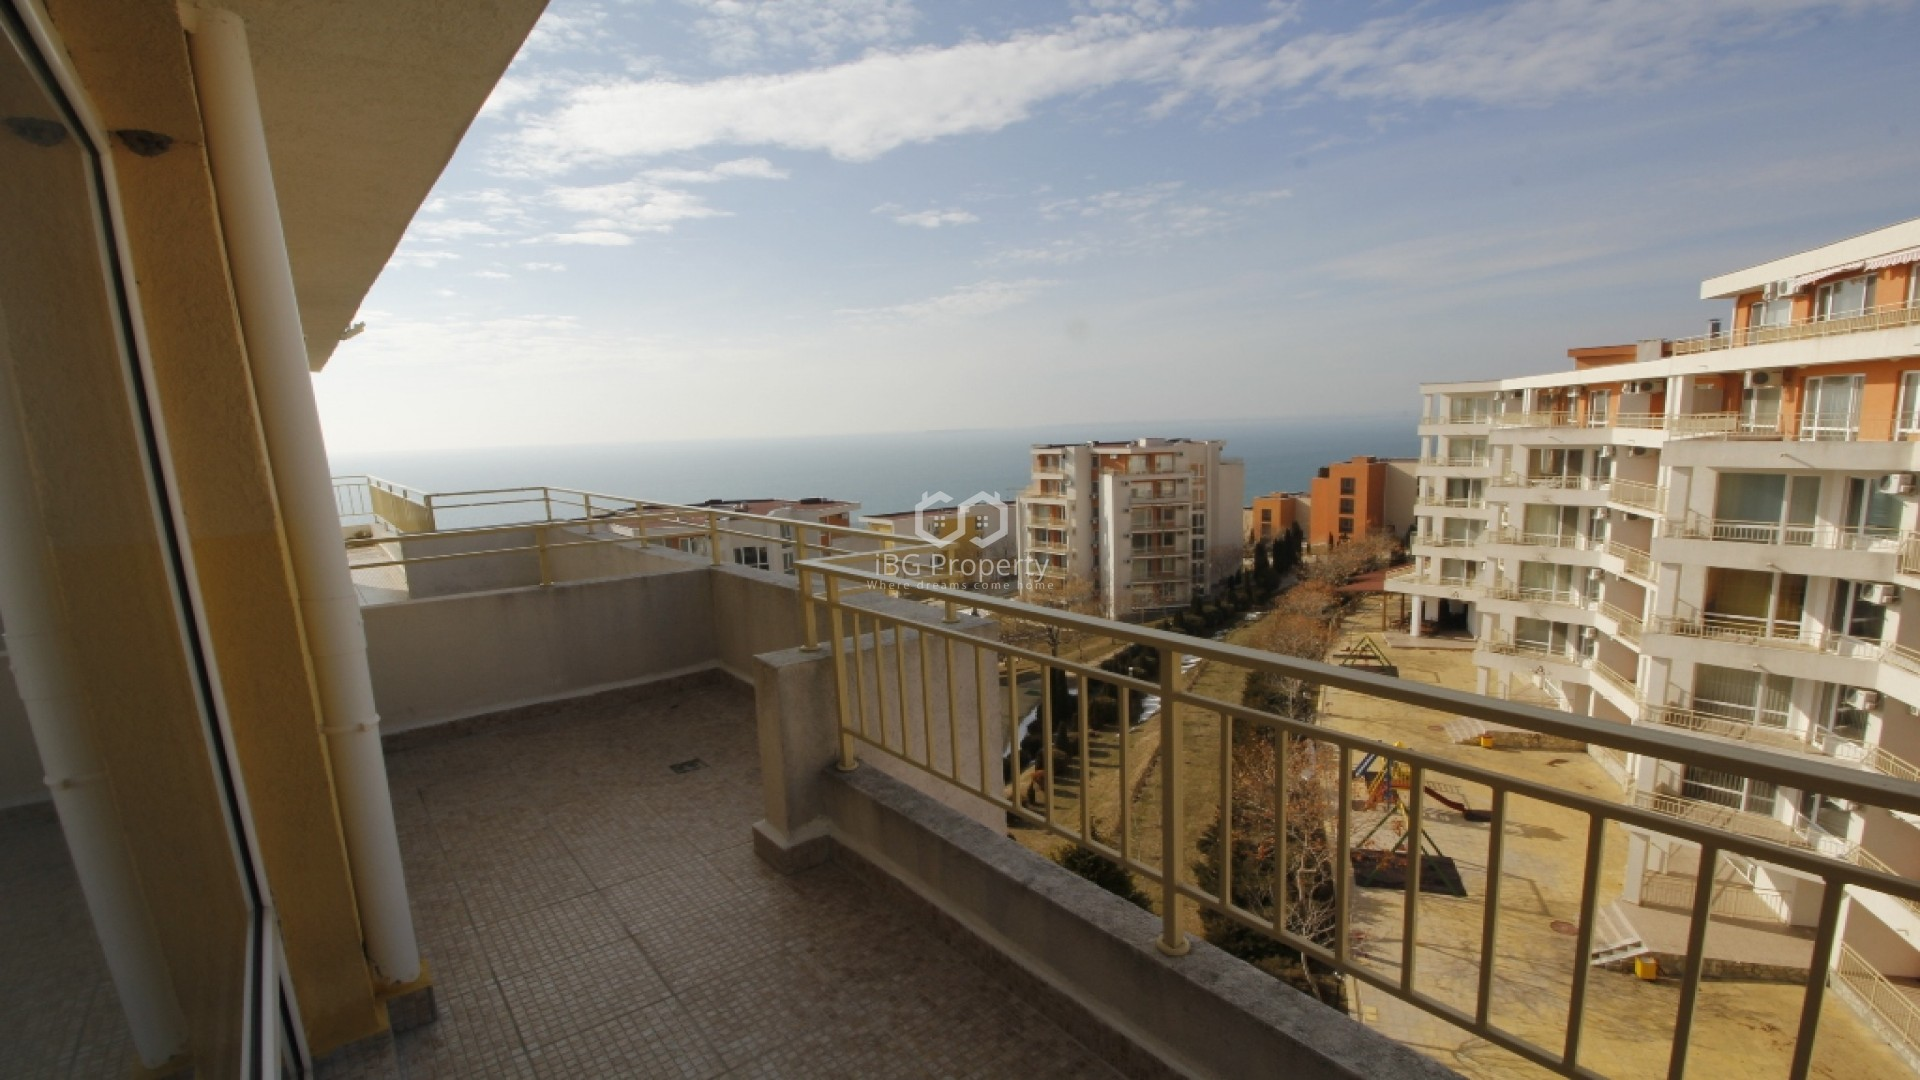 One bedroom apartment Elenite 73 m2